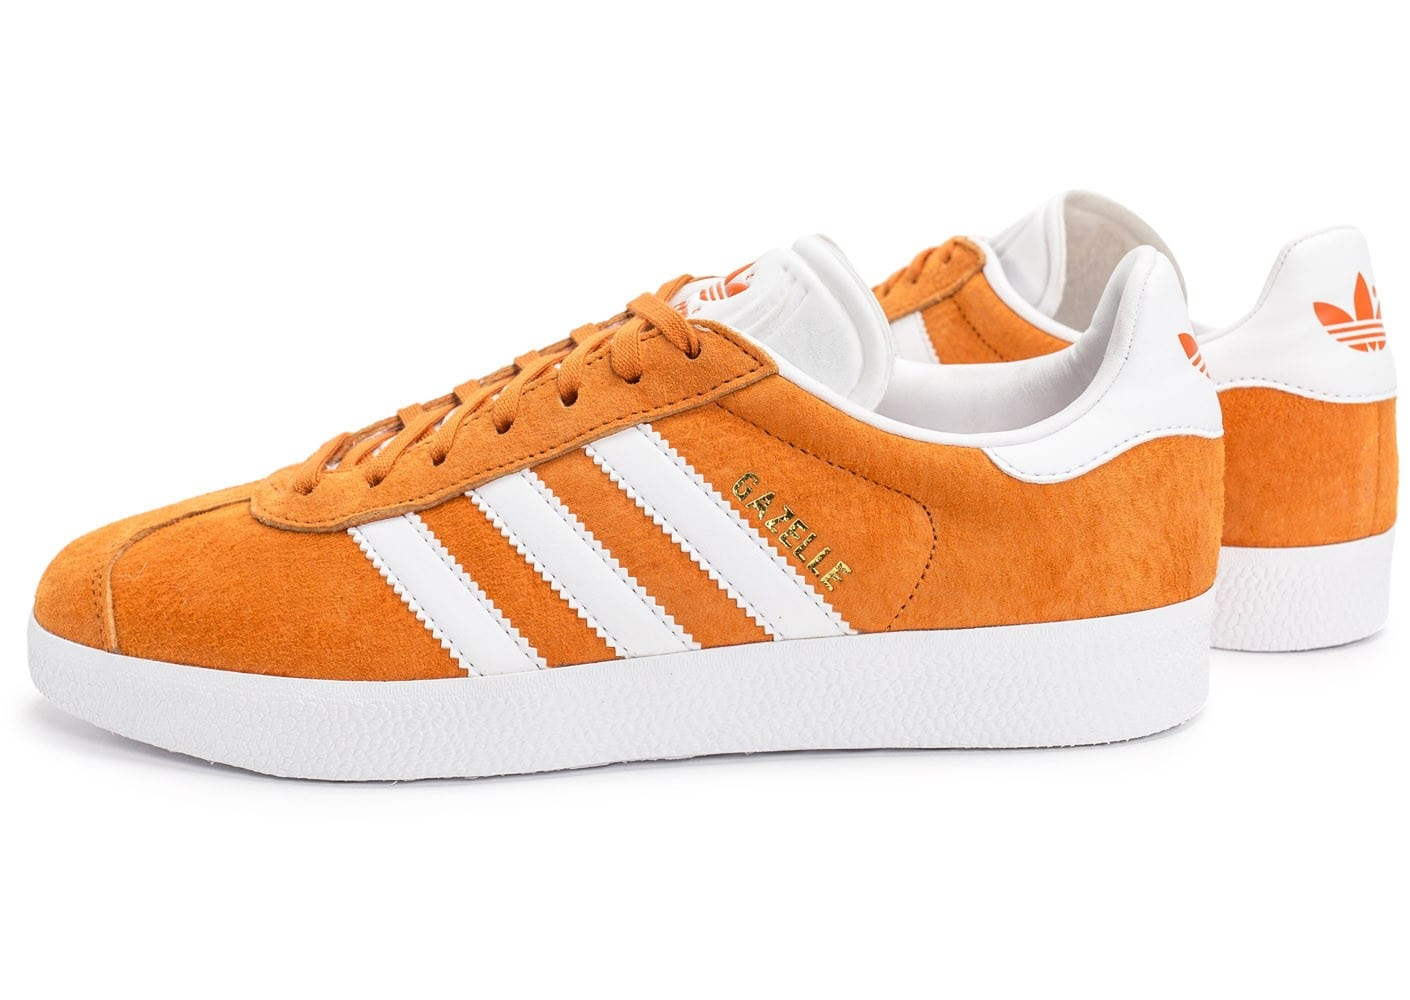 adidas Gazelle orange Chaussures Baskets homme Chausport